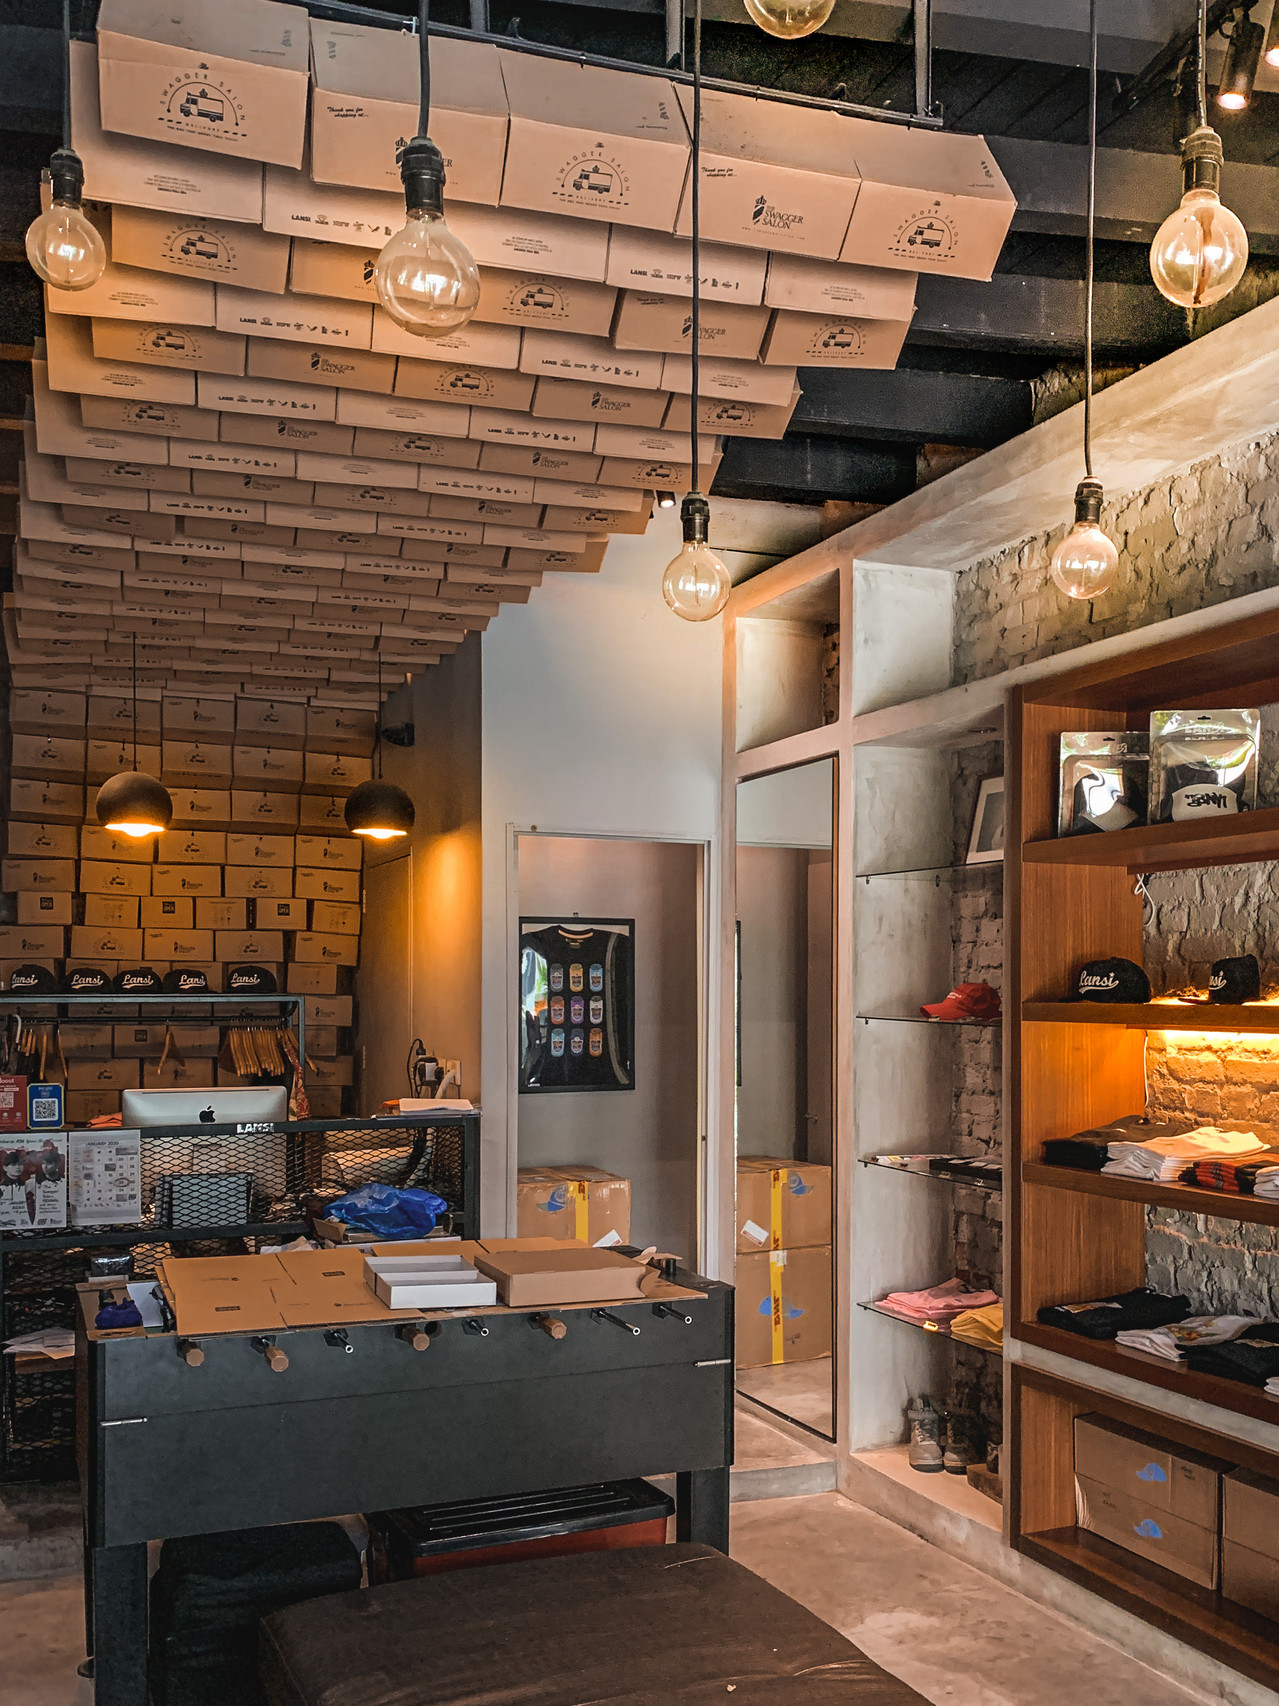 Industrial chic decor, wooden clothes shelves of The Swagger Salon, RollingBear Travels blog.